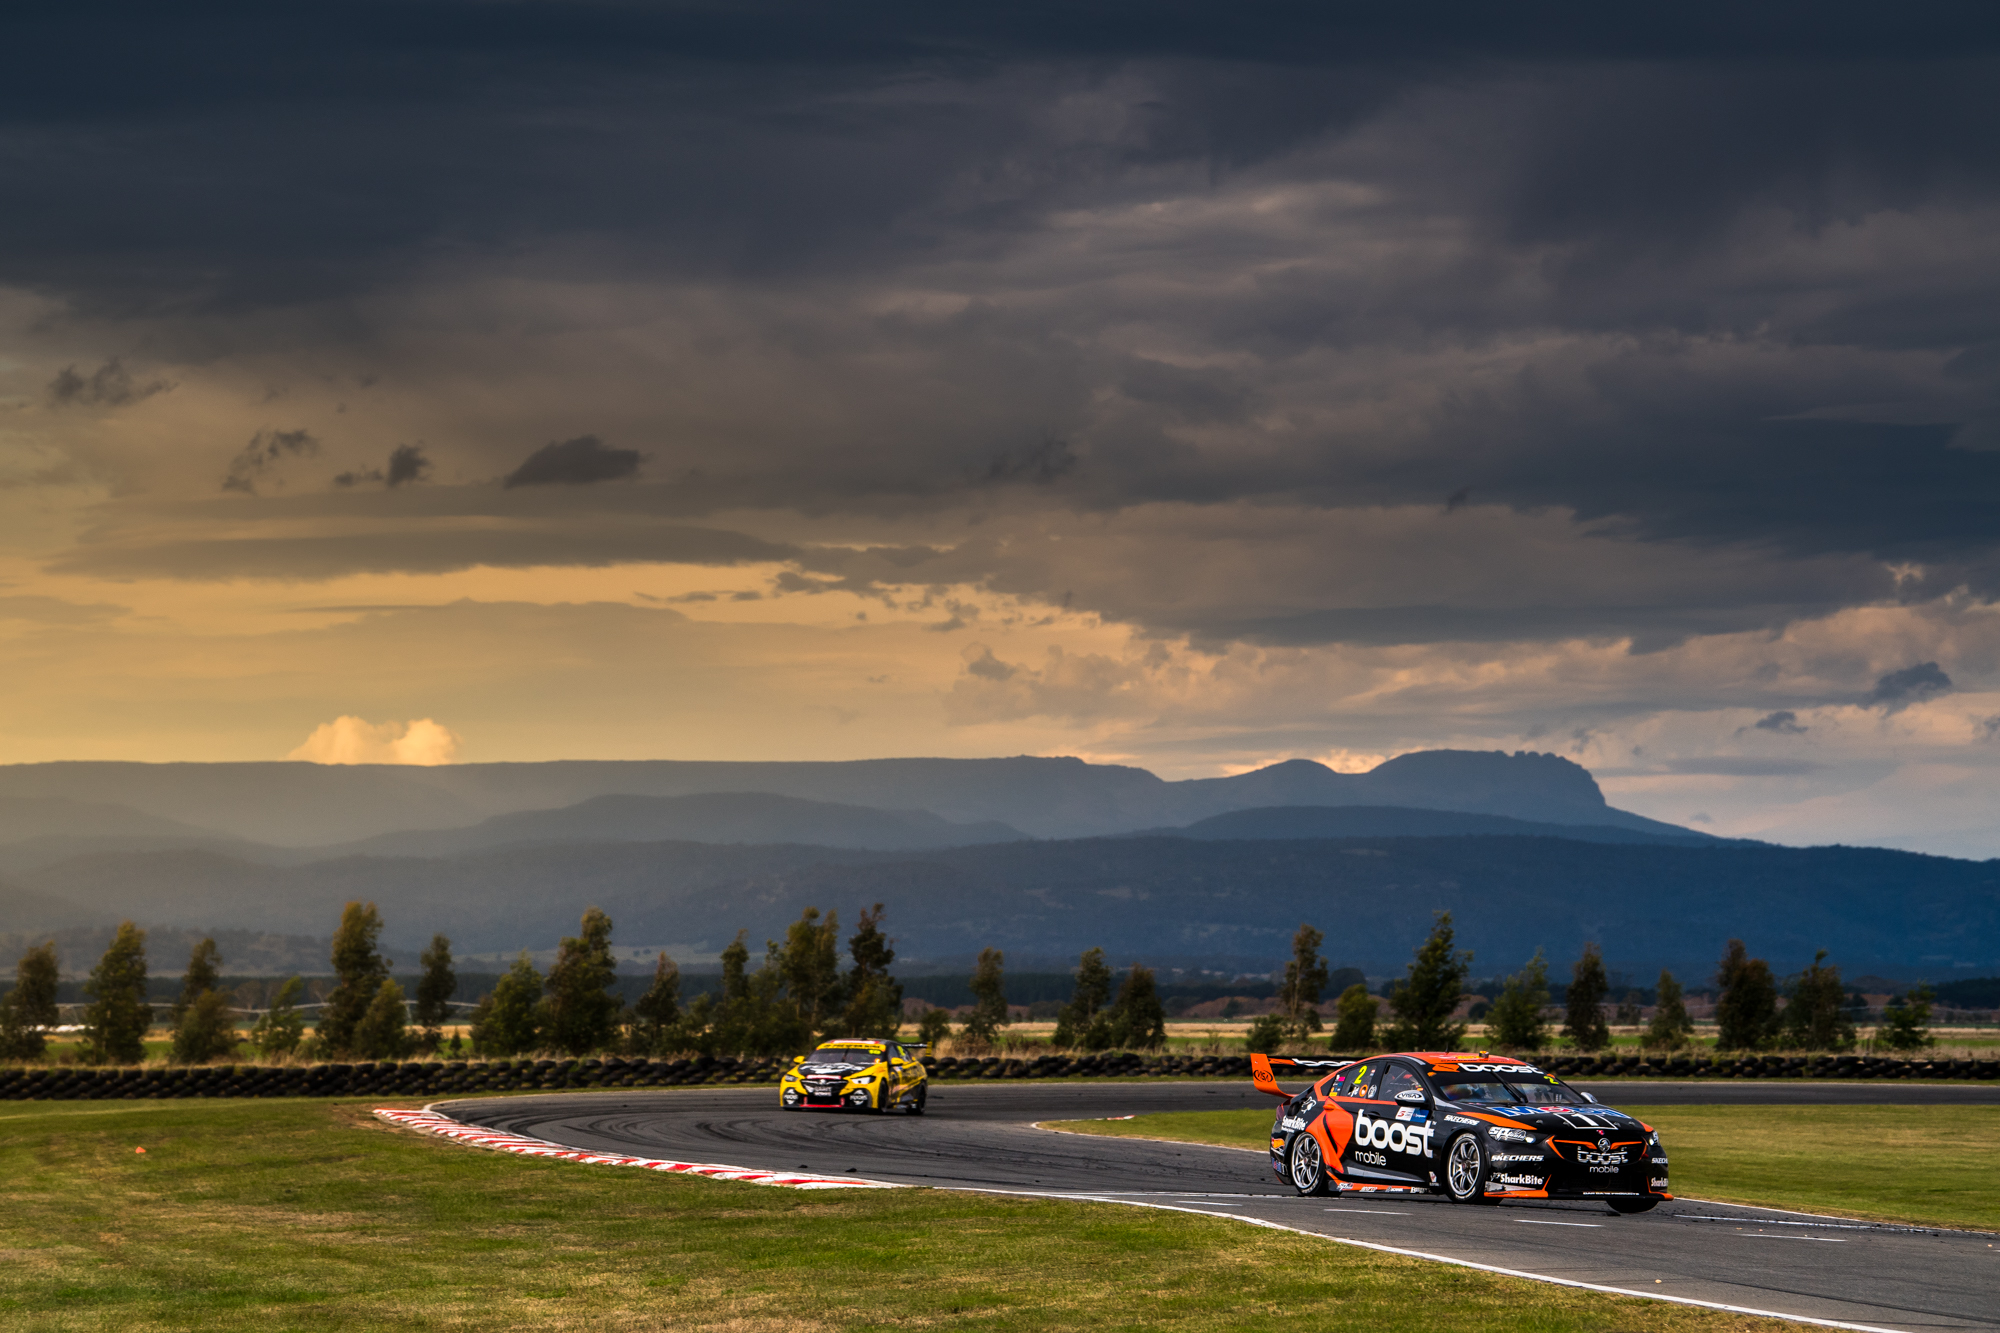 2018 Supercars Championship Round 3. Tasmania SuperSprint, Symmons Plains Raceway, Tasmania, Australia. Friday 6th April to Sunday 8th April 2018. World Copyright: Daniel Kalisz Photographer Ref: Digital Image DSC_7727.NEF